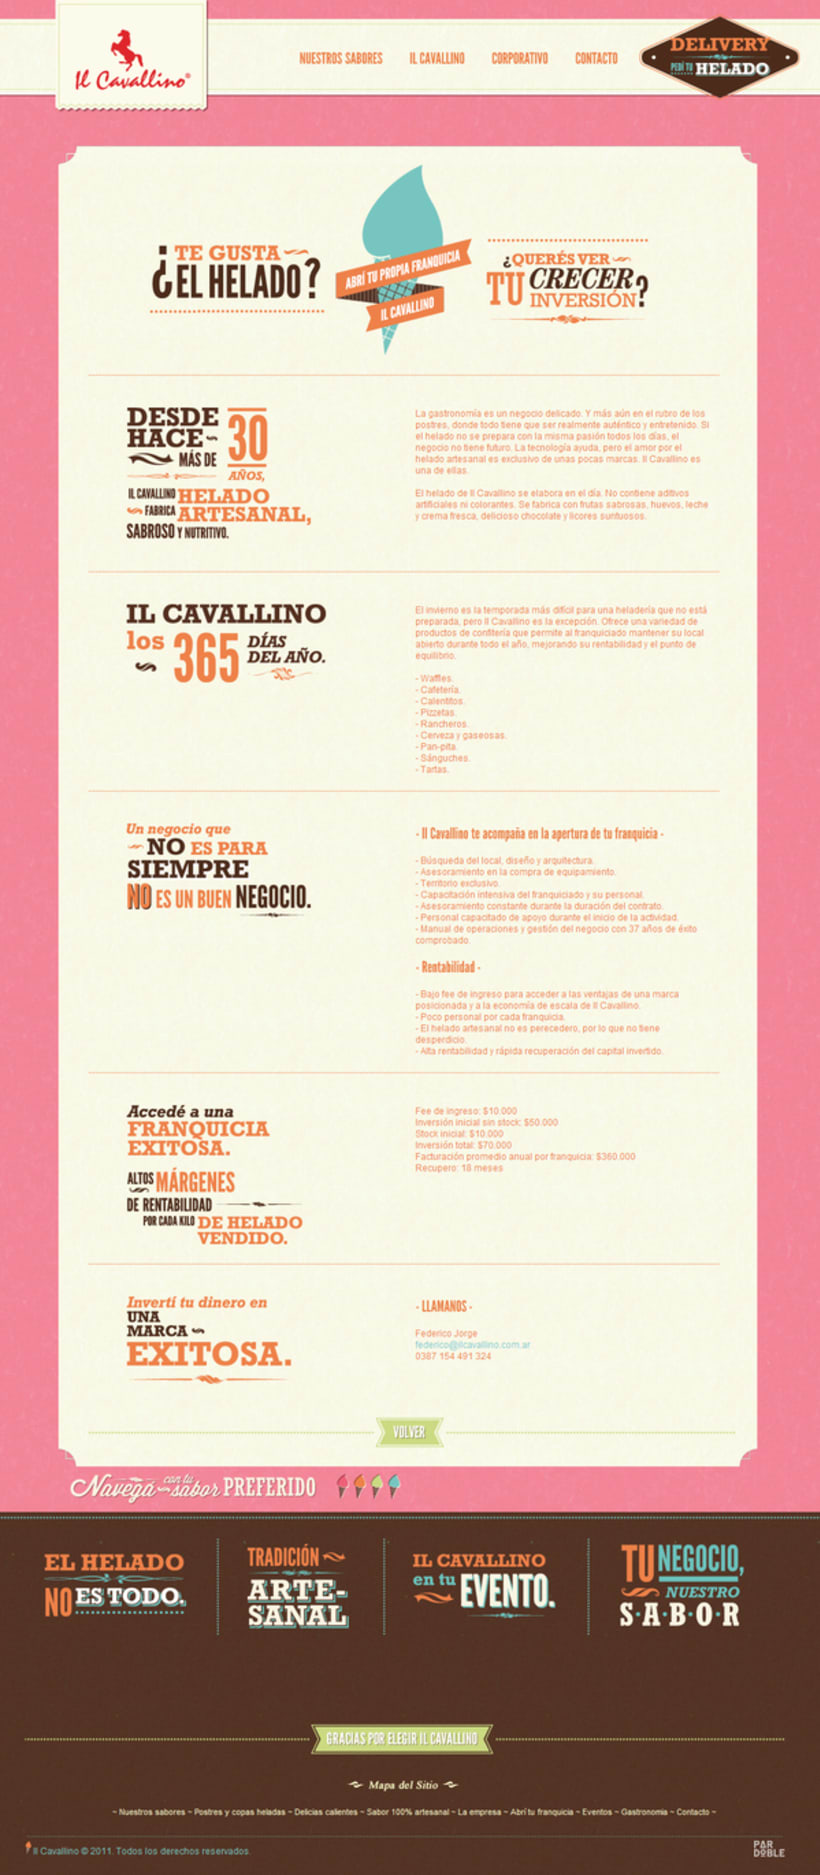 Il Cavallino website 1